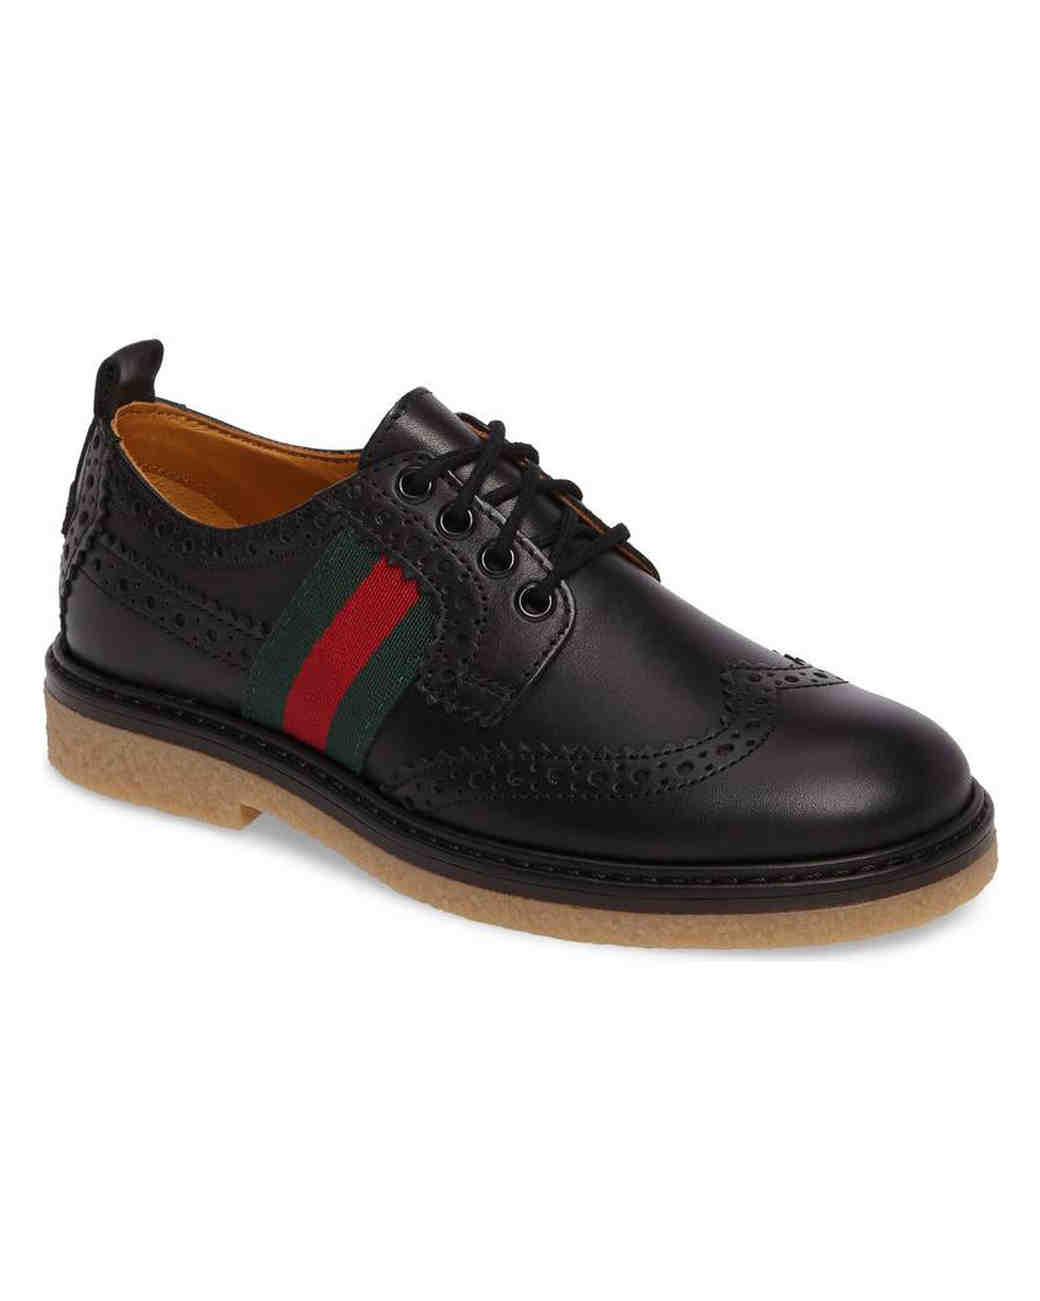 black ring bearer shoe red stripe